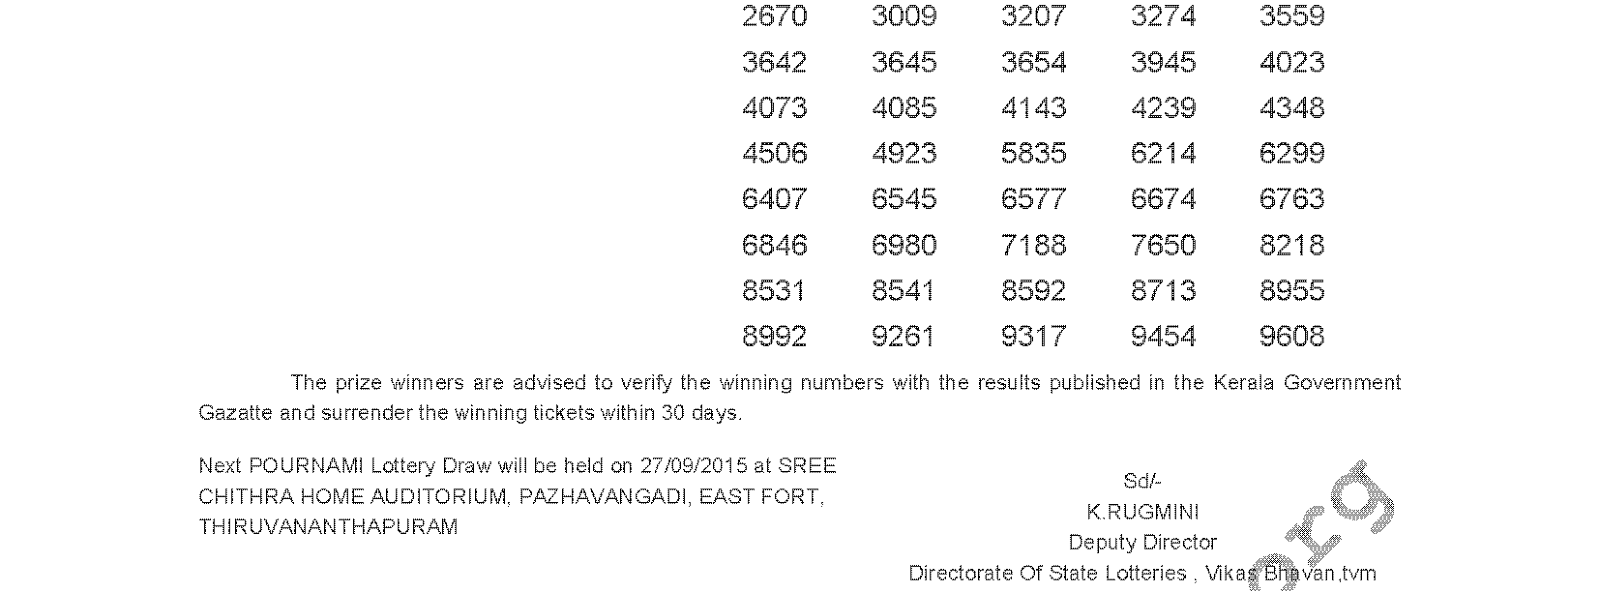 POURNAMI Lottery RN 203 Result 20-9-2015